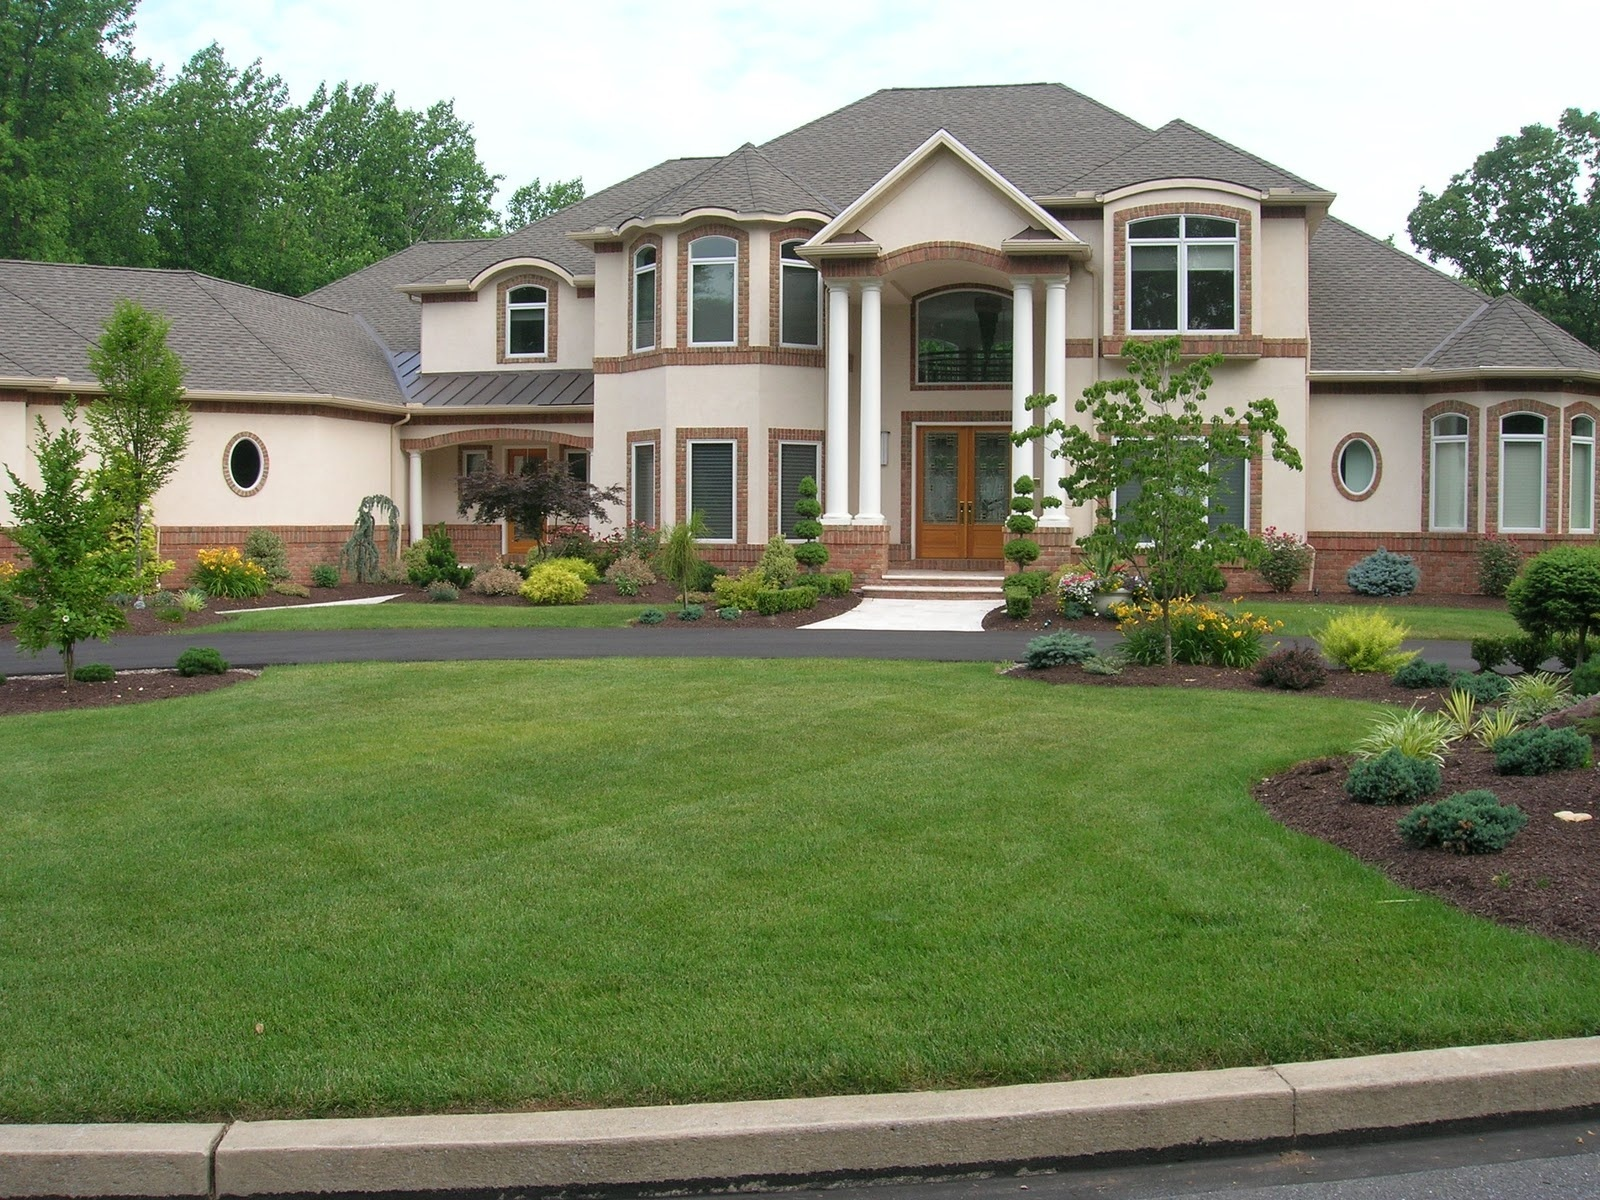 Luxury Homes For Sale Under 1 in Framingham Ma